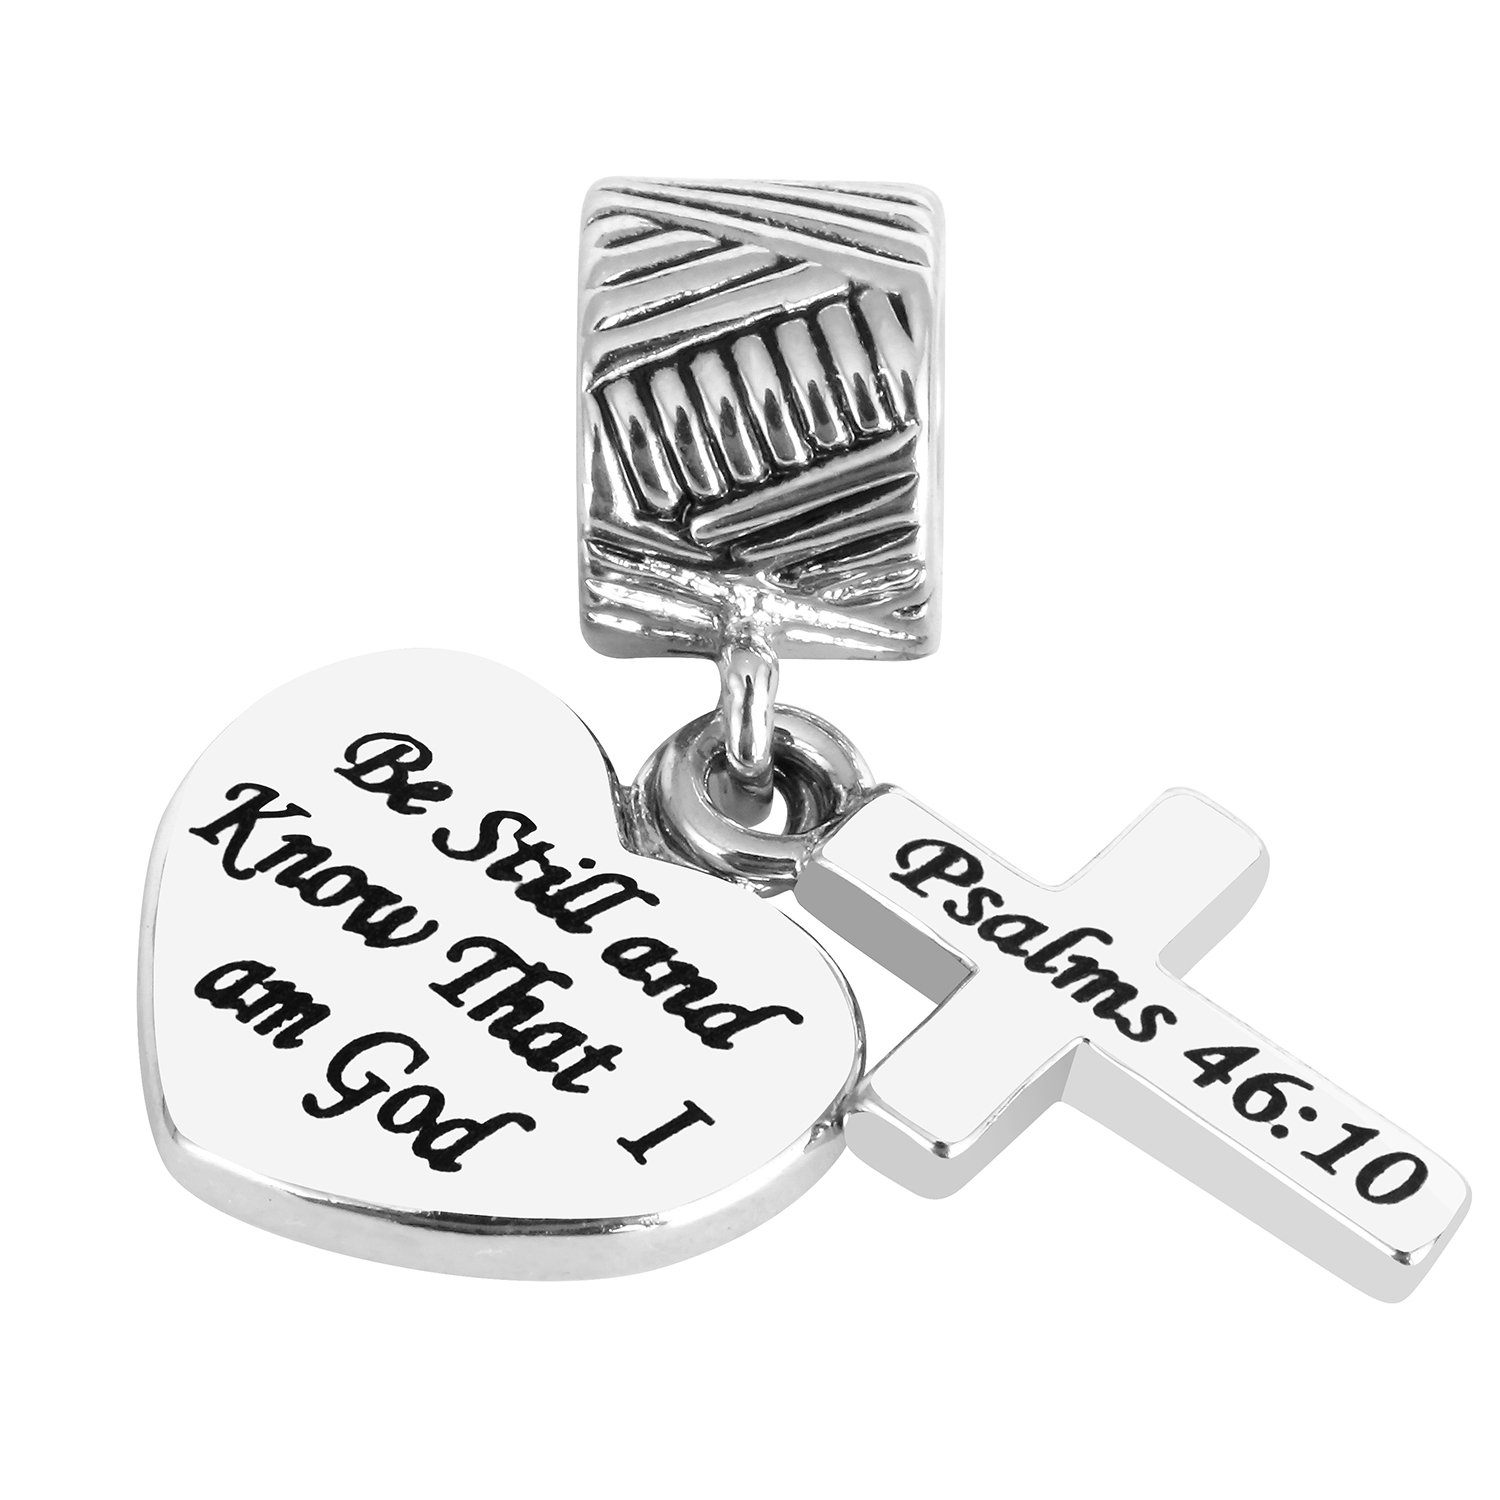 Religious Jewelry Gifts for Girls Women Sisters Cross Silver Charms Bible Verse Charm Christian Heart Charm Bead Religious Charms for Bracelets Necklace JHMY B07F3CZNW8_US